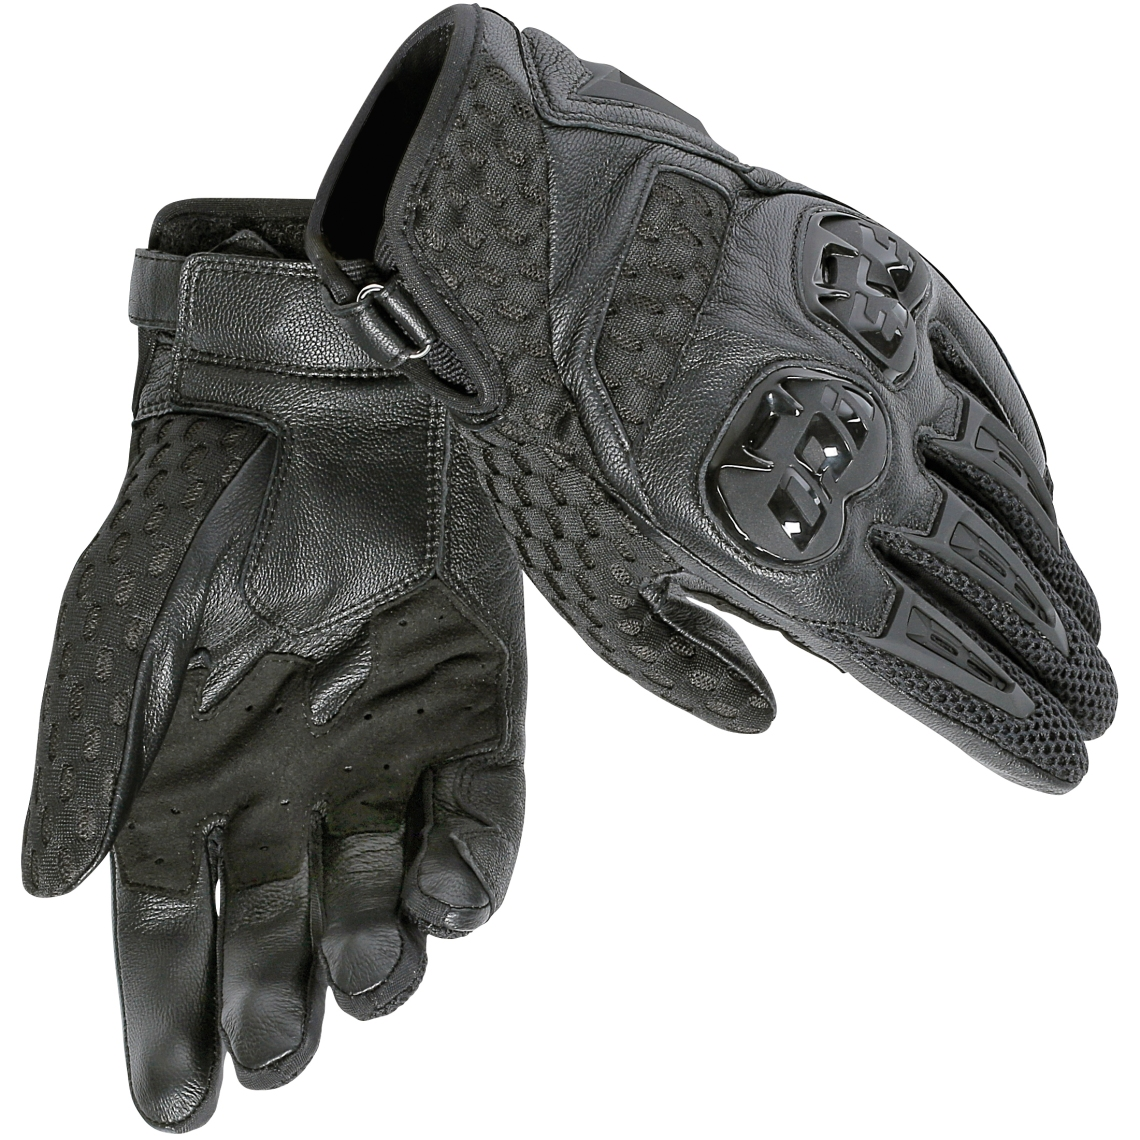 2015-dainese-air-hero-gloves-black-black-mcss